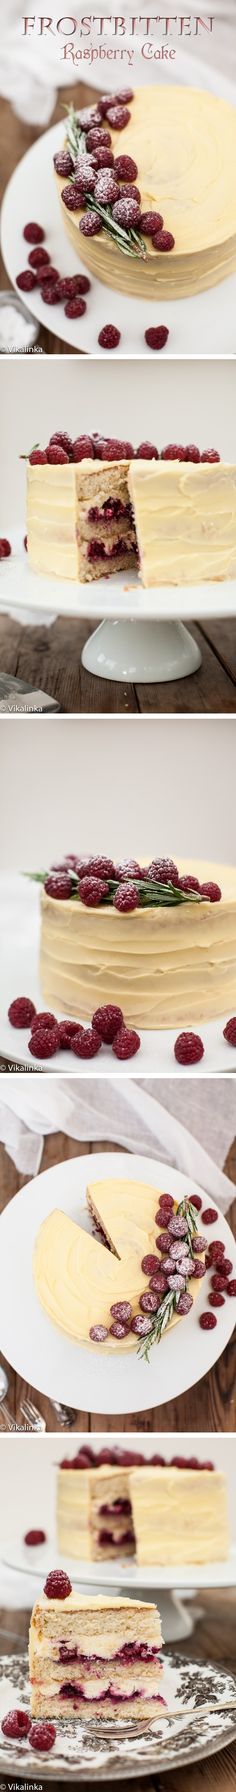 """Frostbitten Raspberry Cake: This cake is off the scale magnificent! Russian """"biskvit"""" (vanilla sponge cake) filled with creamy mascarpone and raspberry compote and frosted with a rich white chocolate buttercream. It's glorious!"""